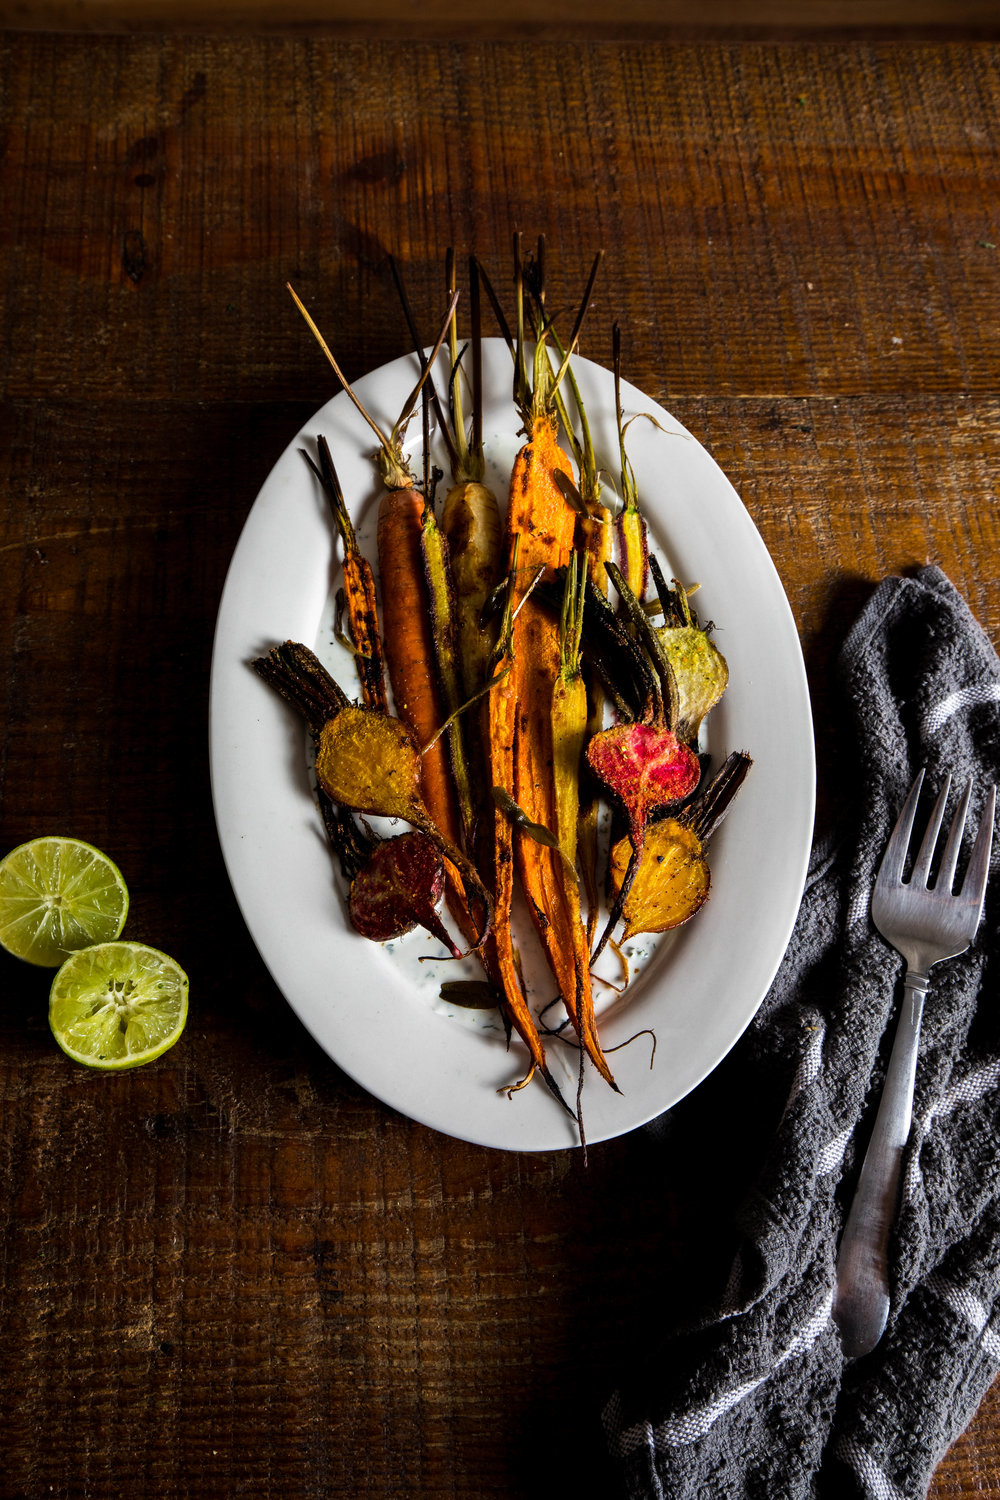 Roasted Root Vegetables and Yogurt Sauce Recipe with Harvesters Community Food Network